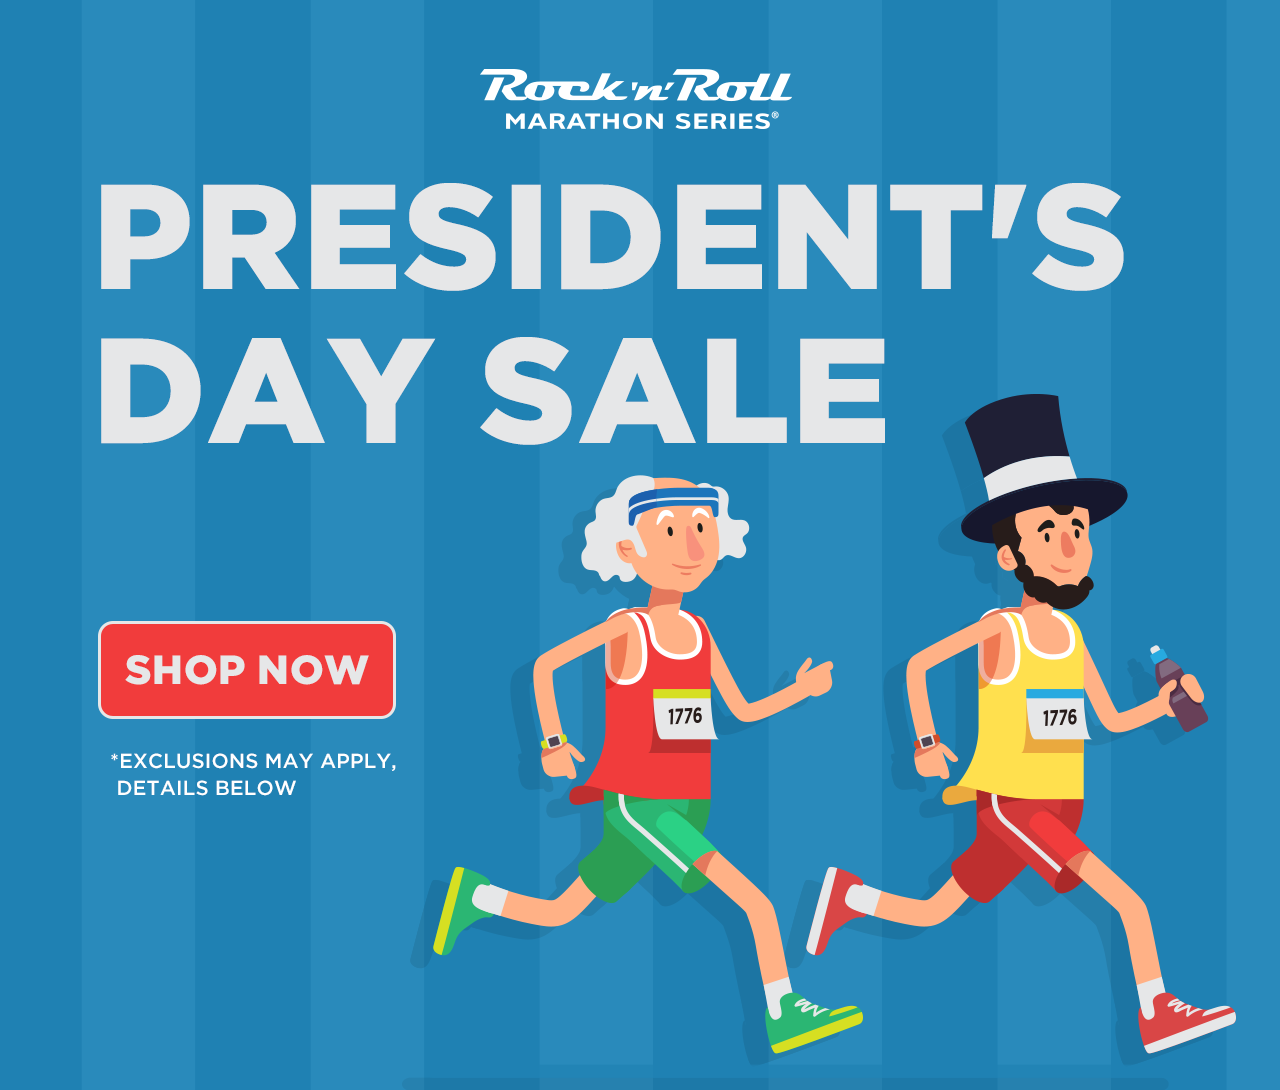 ROCK'N'ROLL PRESIDENT'S DAY SALE - TAKE AN ADDITIONAL 20% OFF